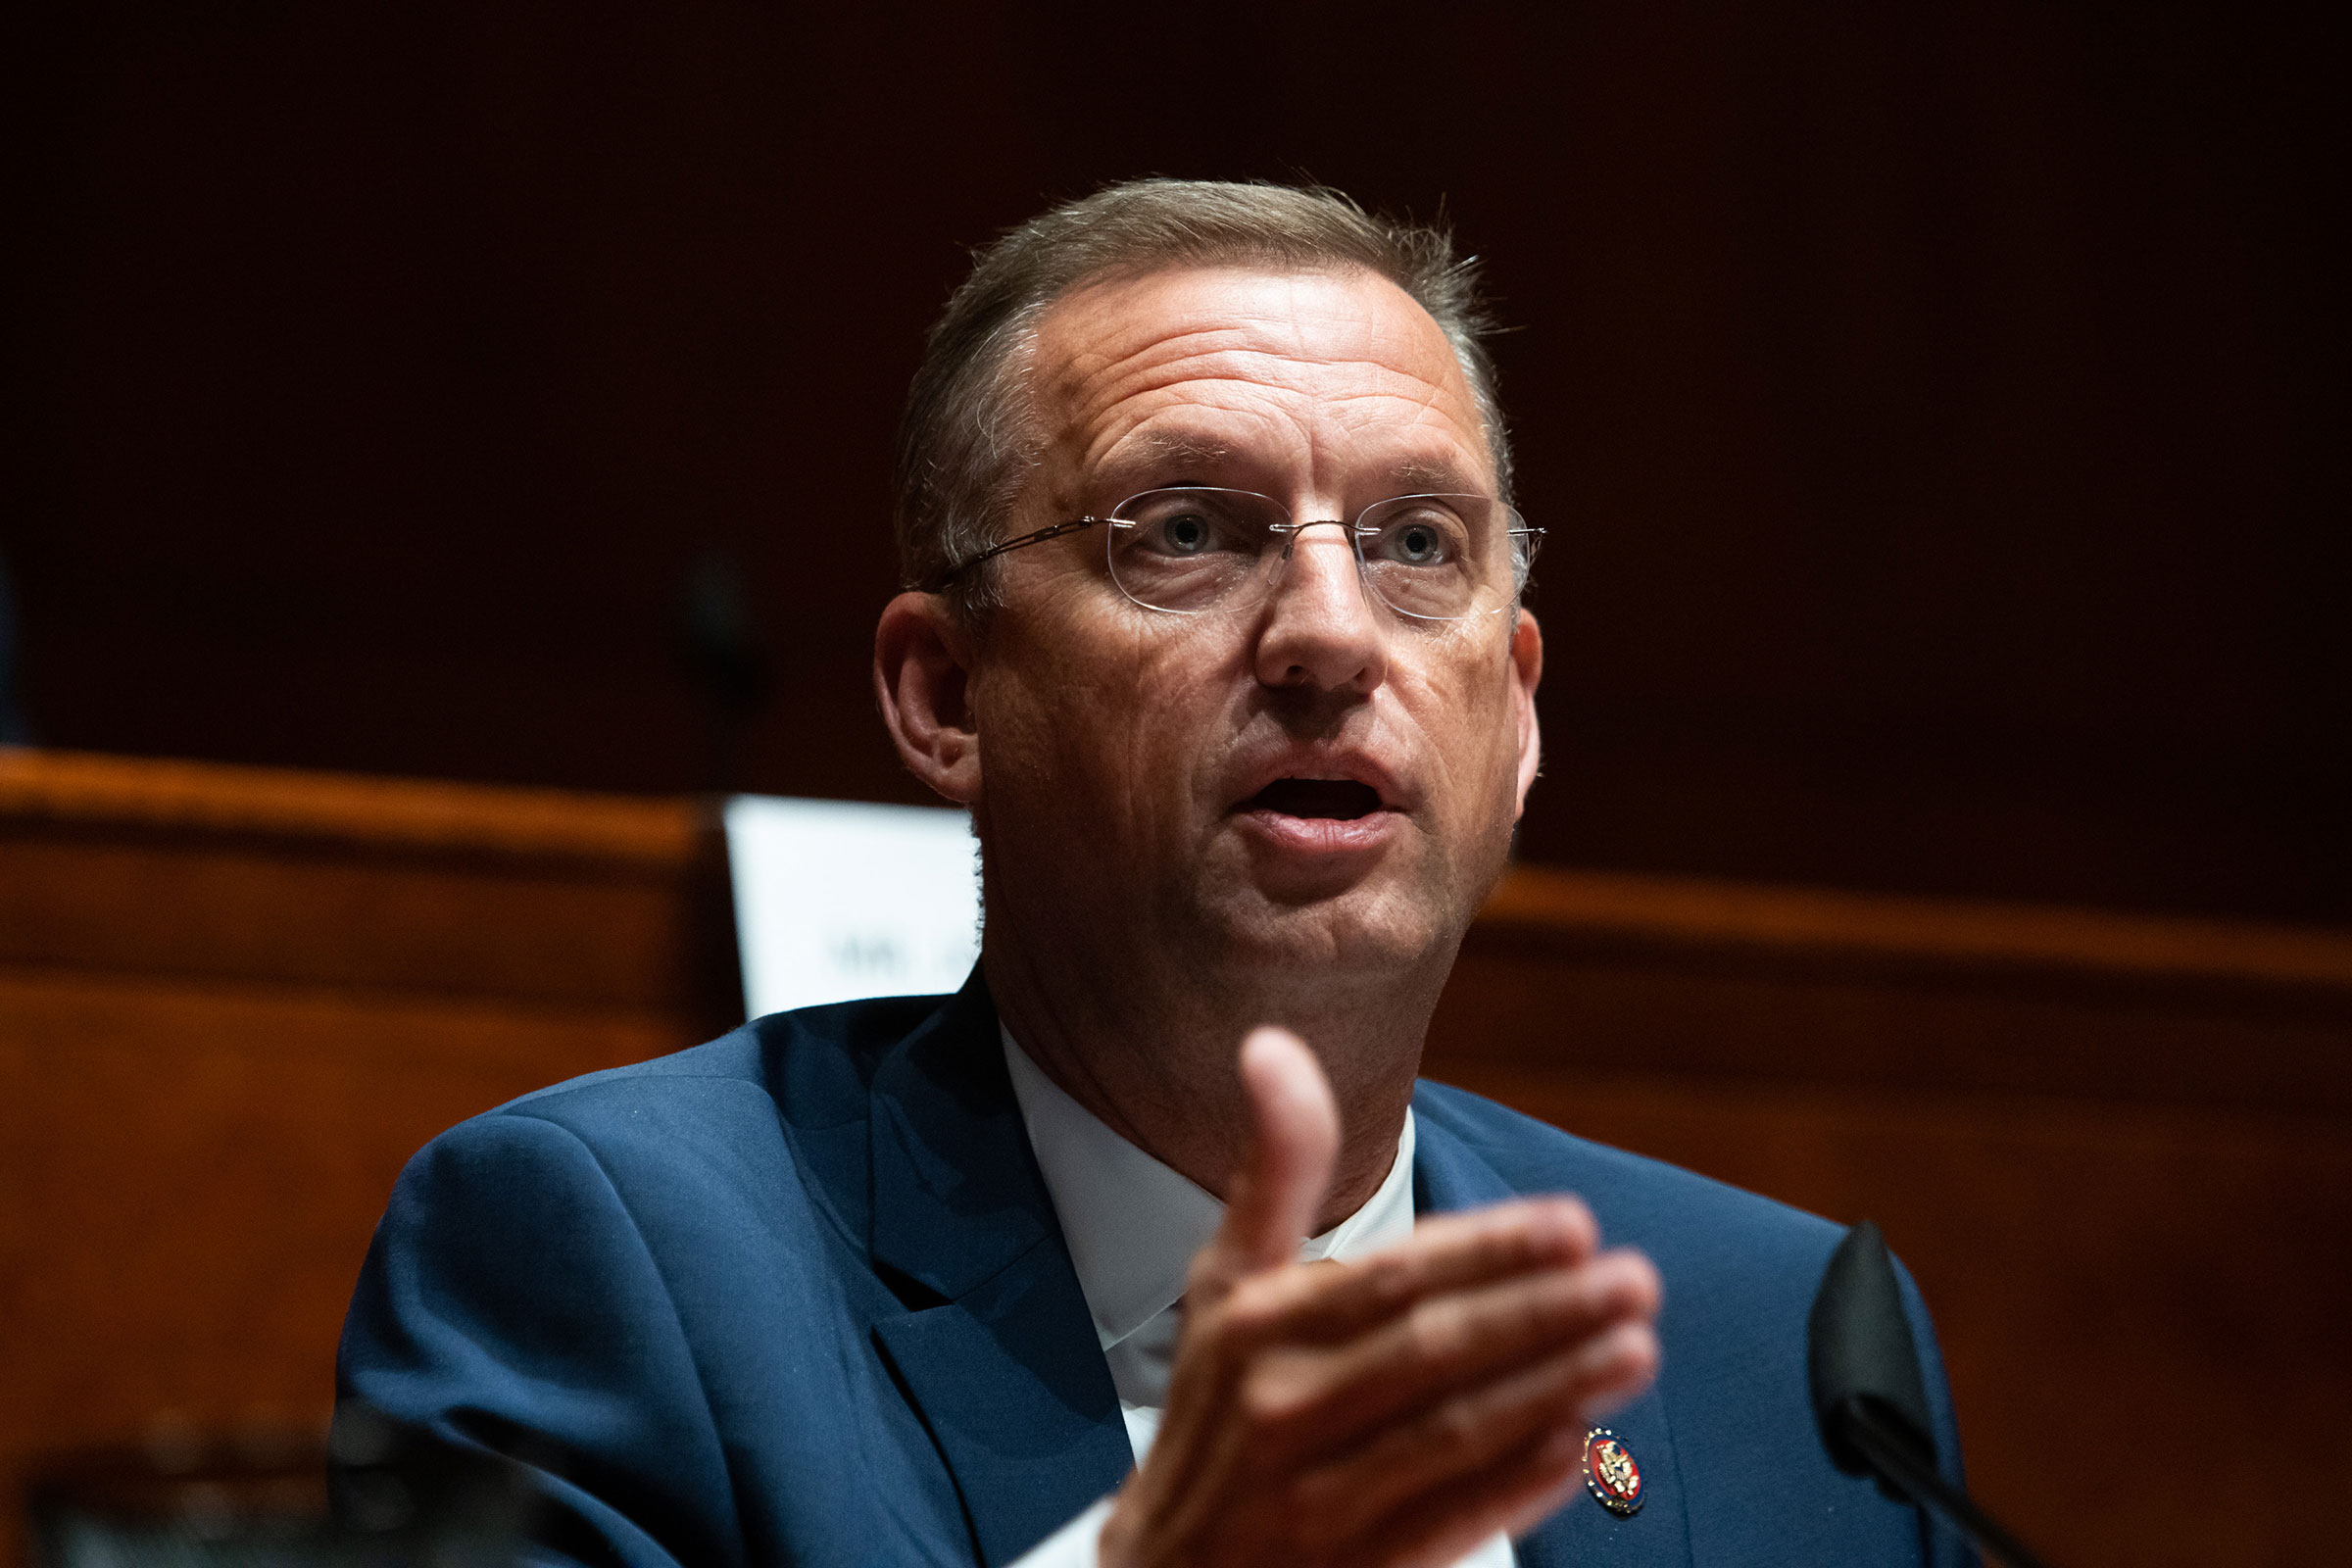 Rep. Doug Collins speaks during a House Judiciary Committee hearing on June 10 in Washington, DC.